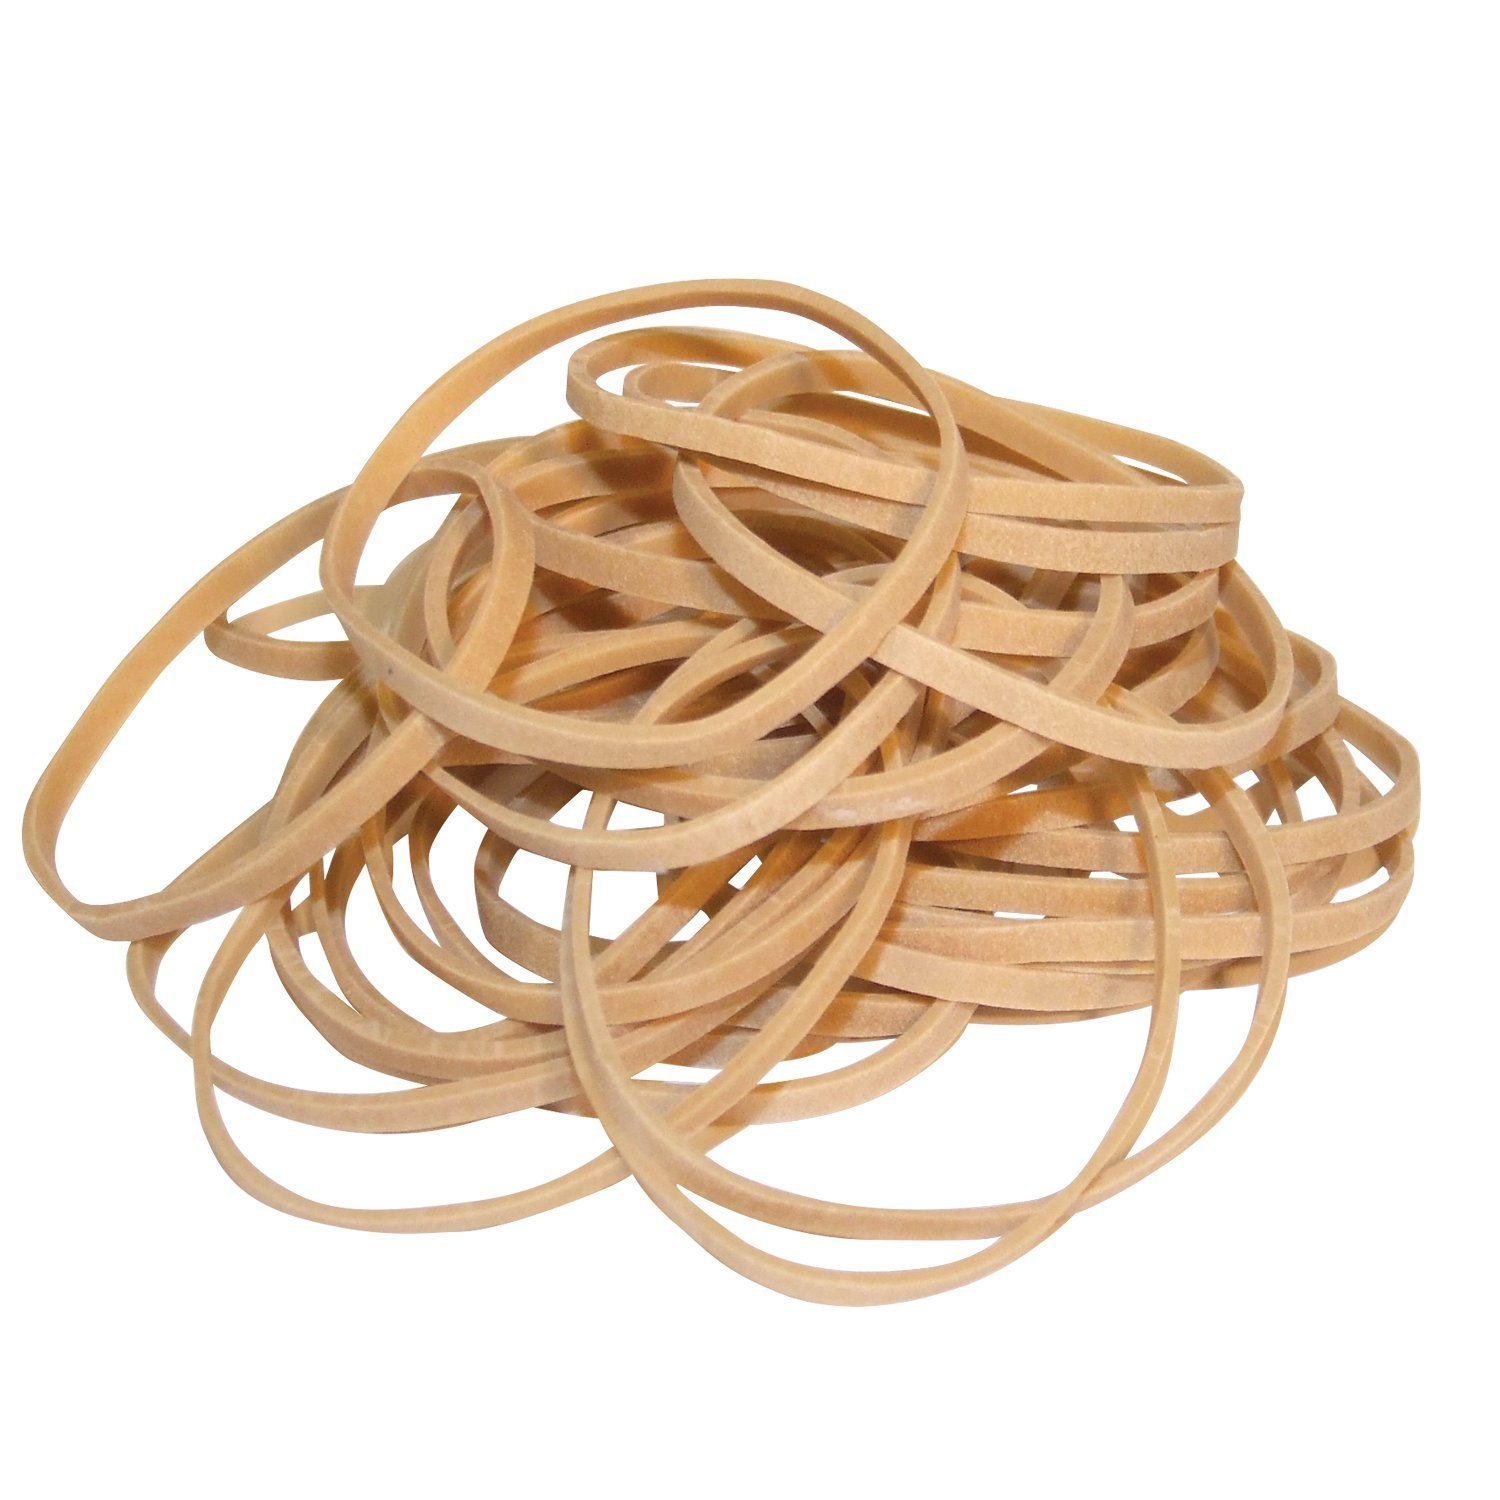 Value Rubber Bands (No 36) 3x130mm 454g